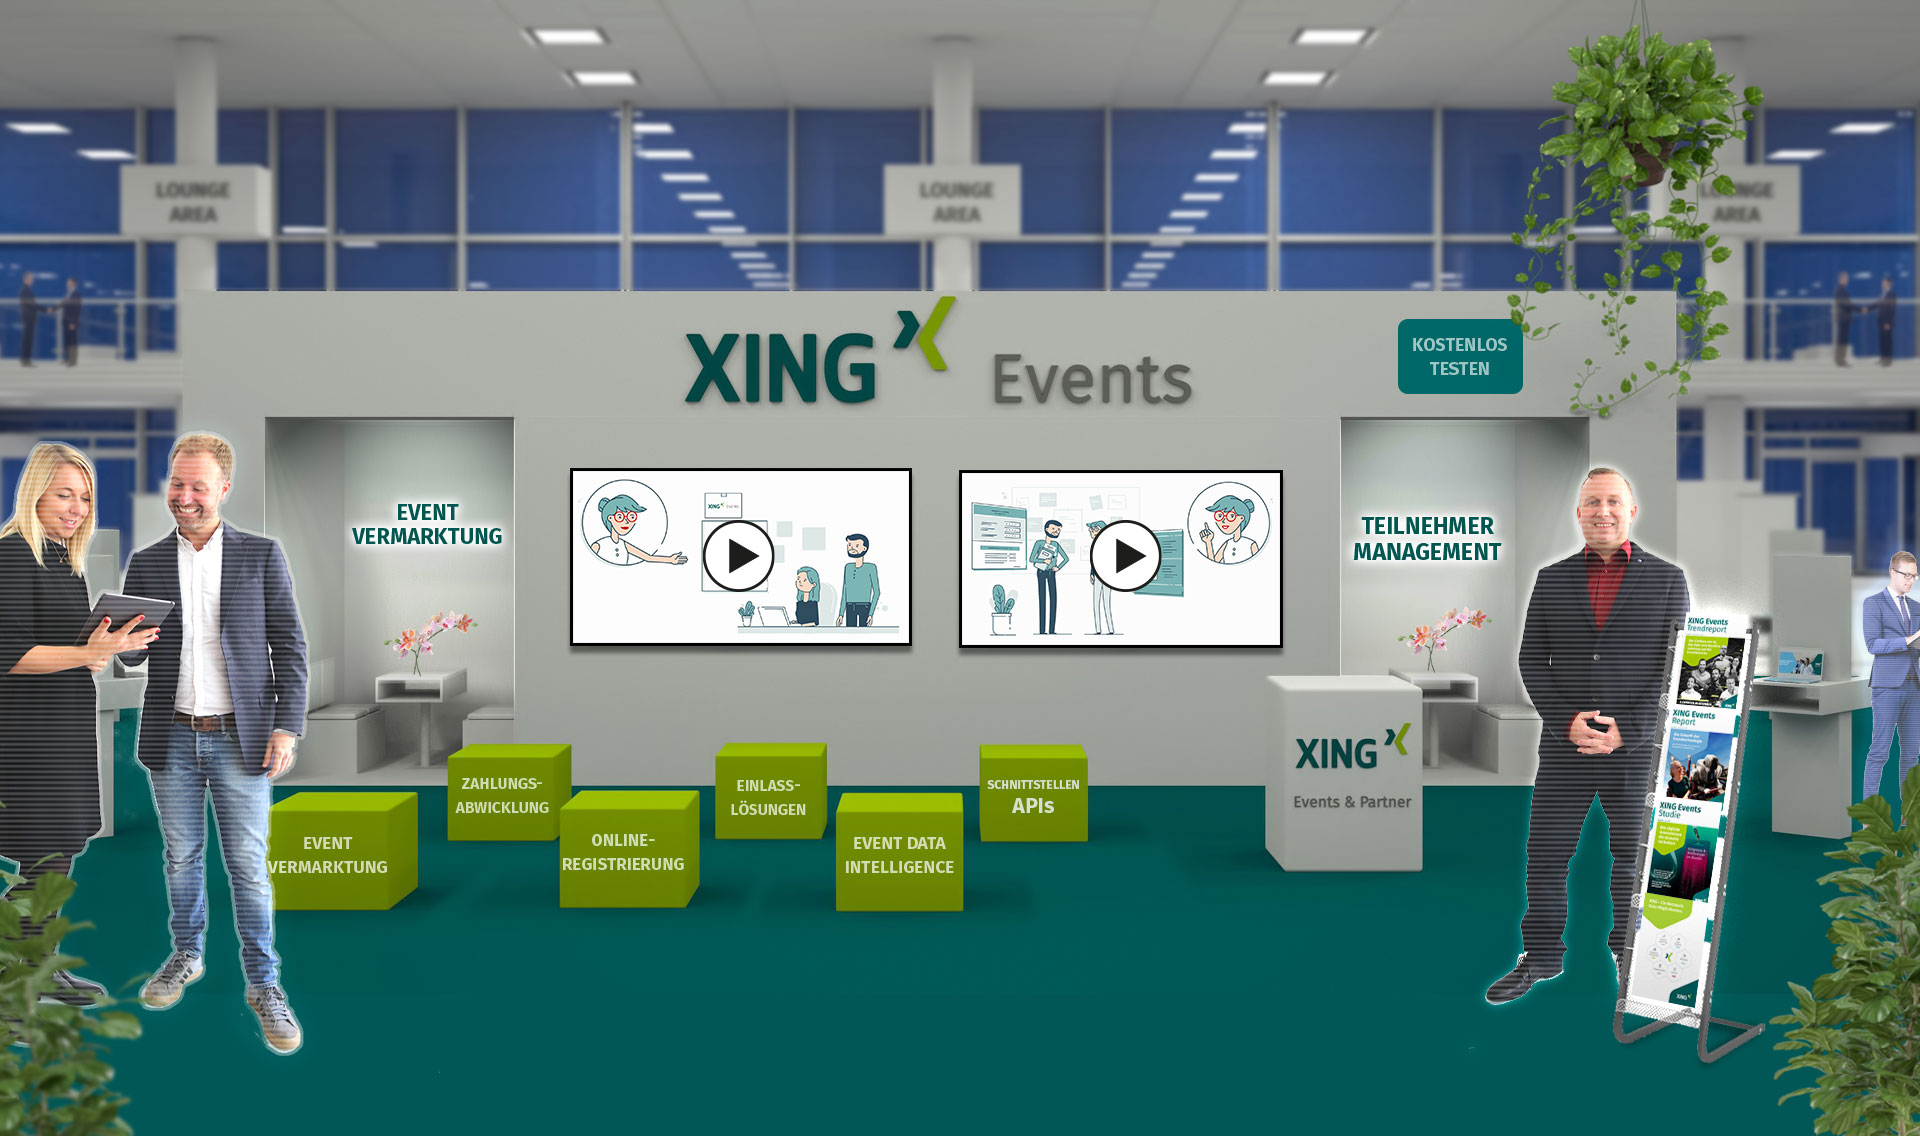 Virtuelle Messe und Konferenz VExCon - XING Events Messestand